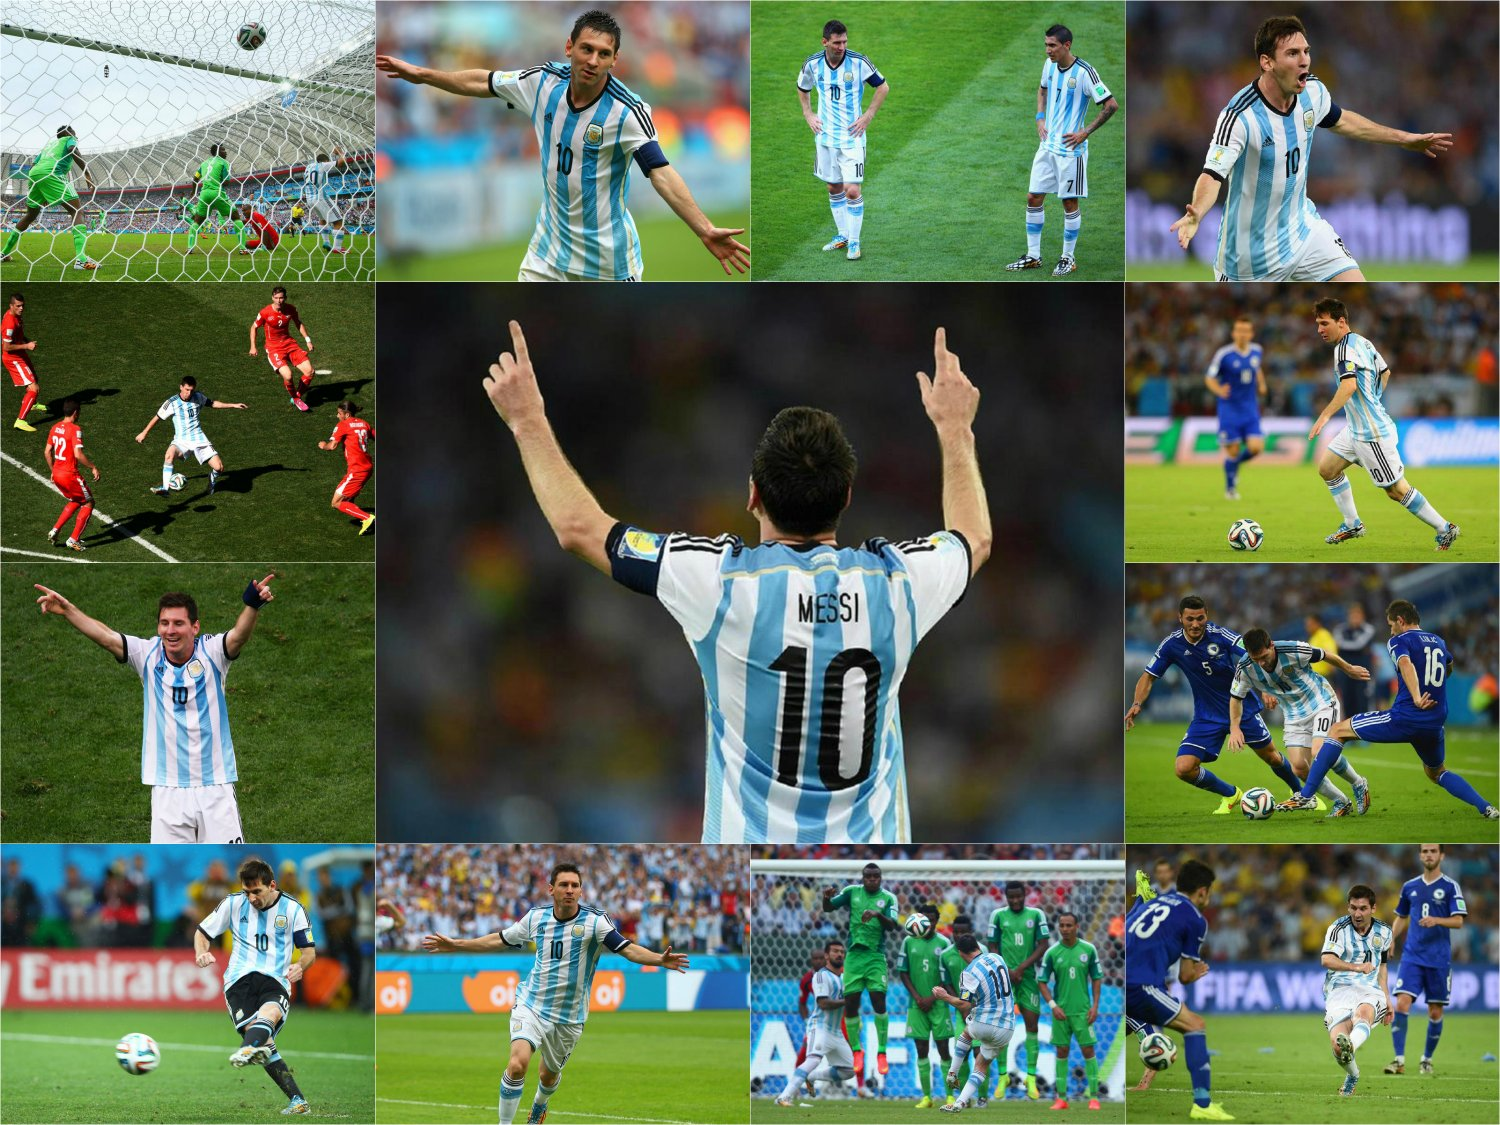 40 x 30 Photo - Football - FIFA World Cup 2014 - Lionel Messi Collage